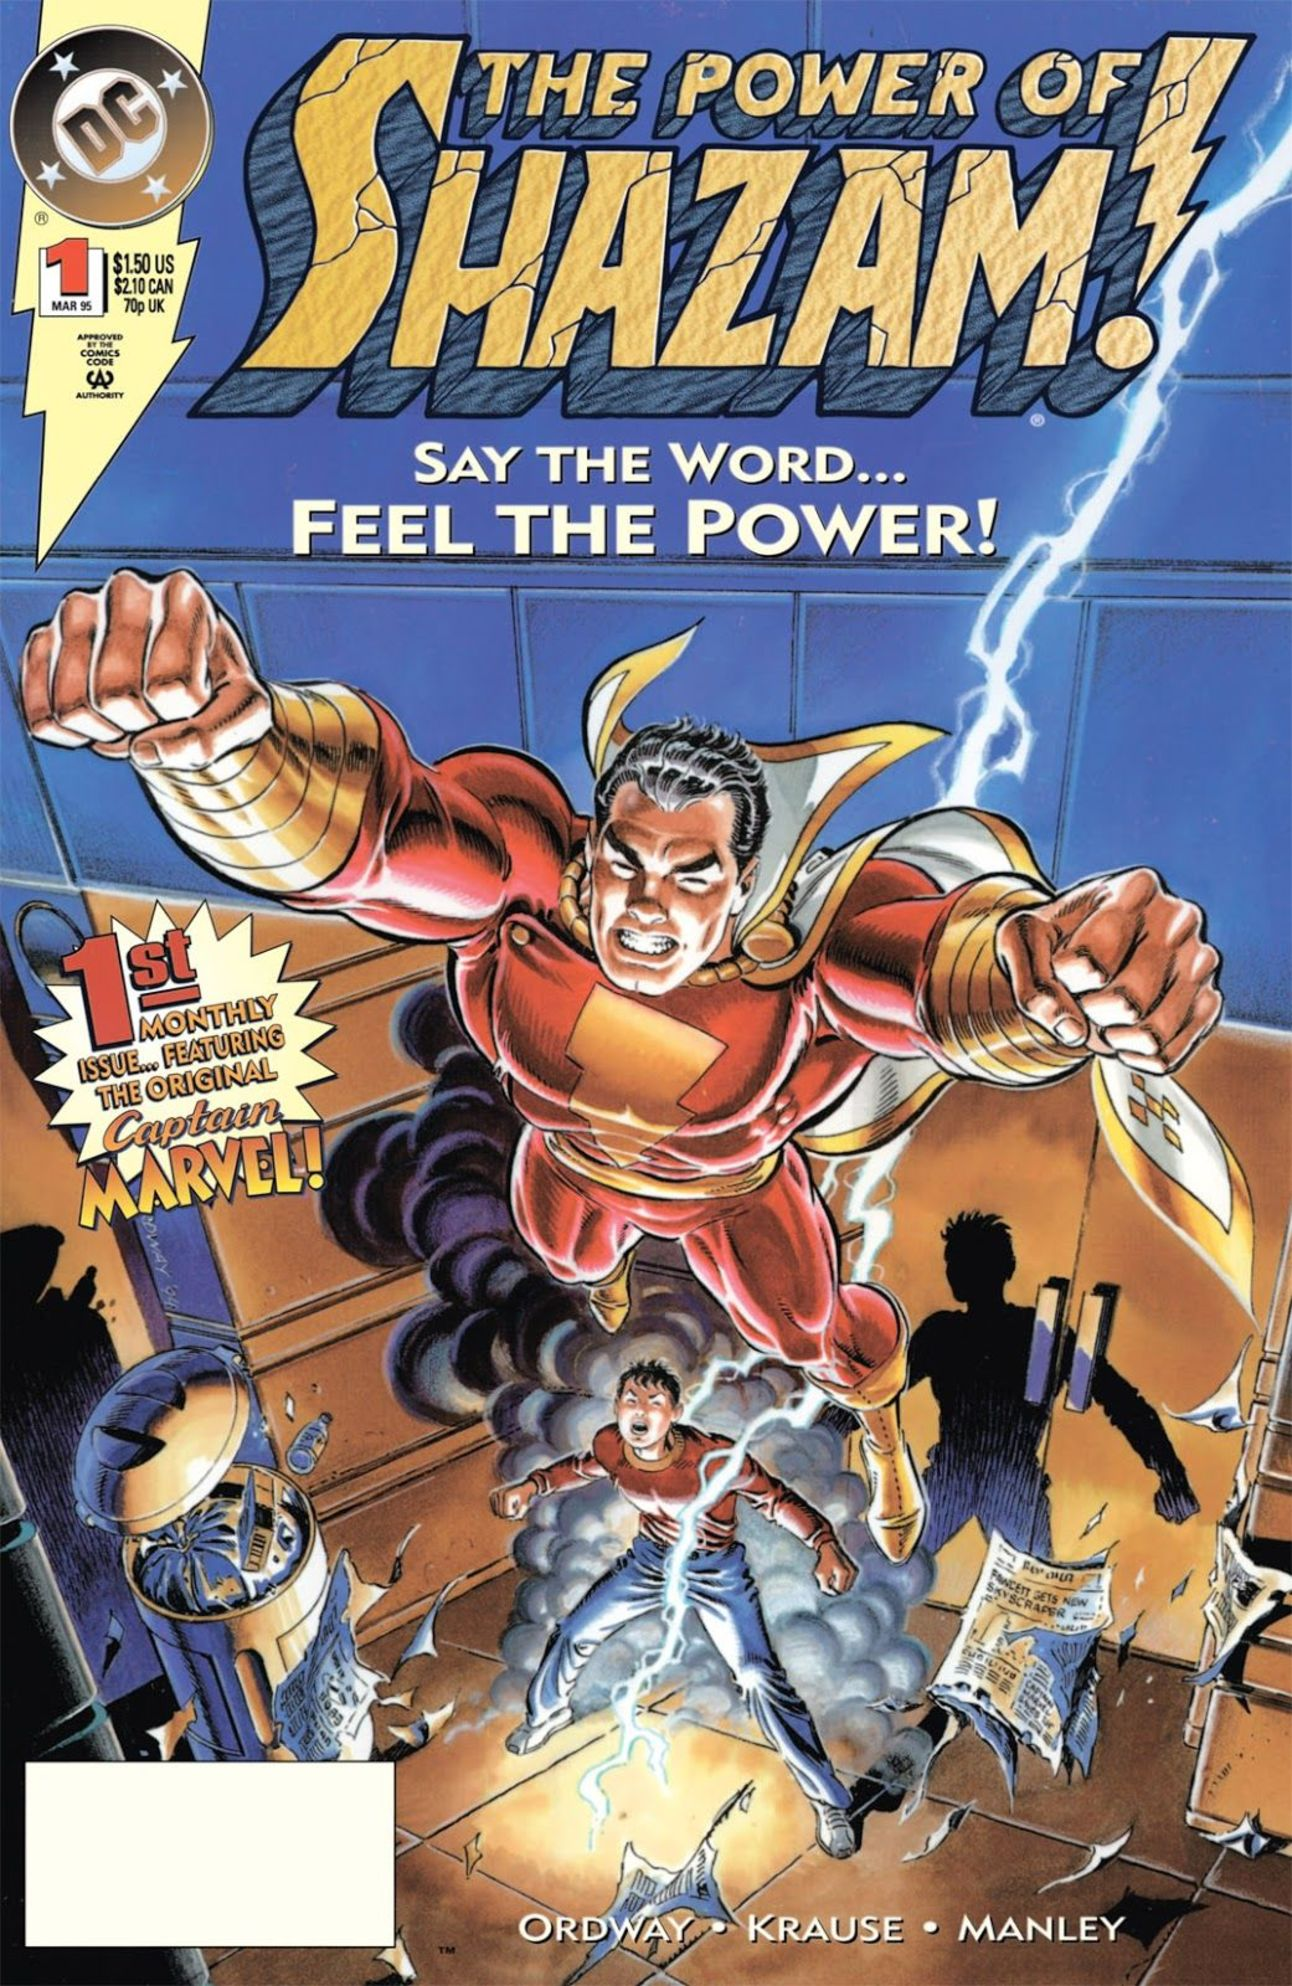 The Power of Shazam (Writer: Jerry Ordway, Art: Peter Krause, Mike Manley)